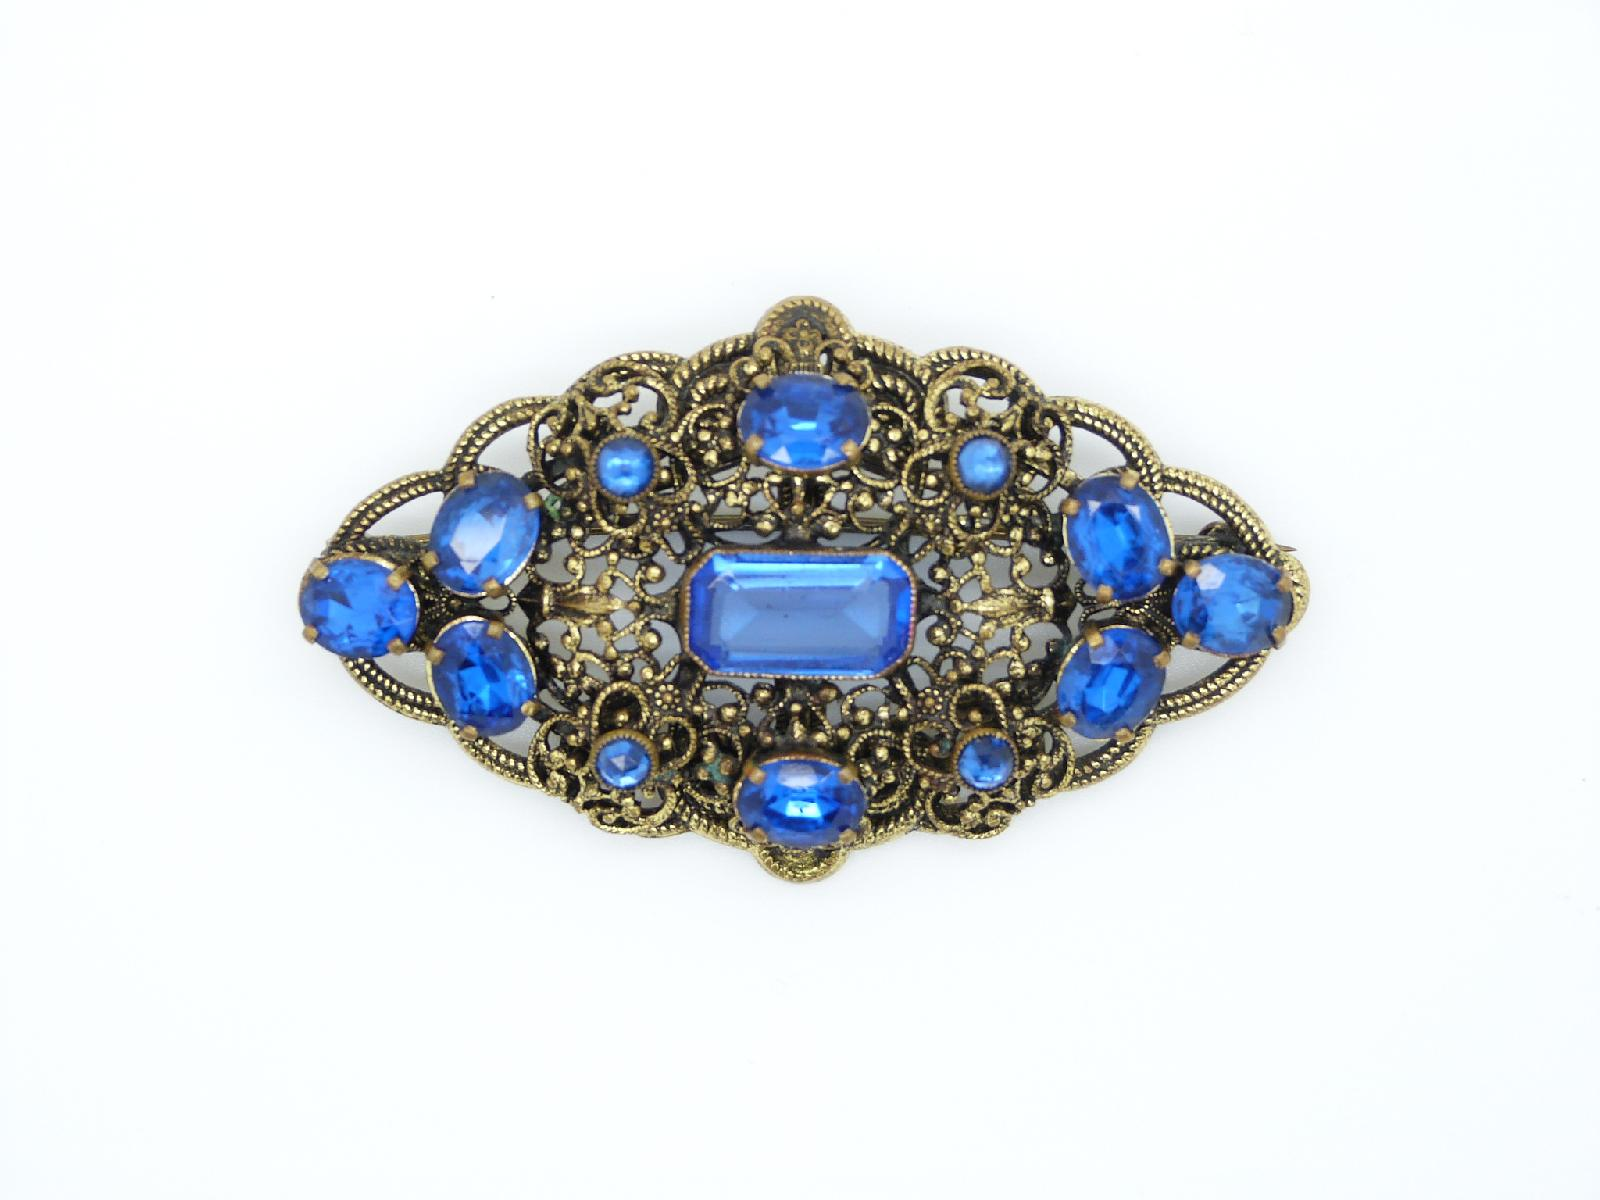 Vintage 30s Large Czech Filigree Lozenge Shape Blue Paste Stone Brooch